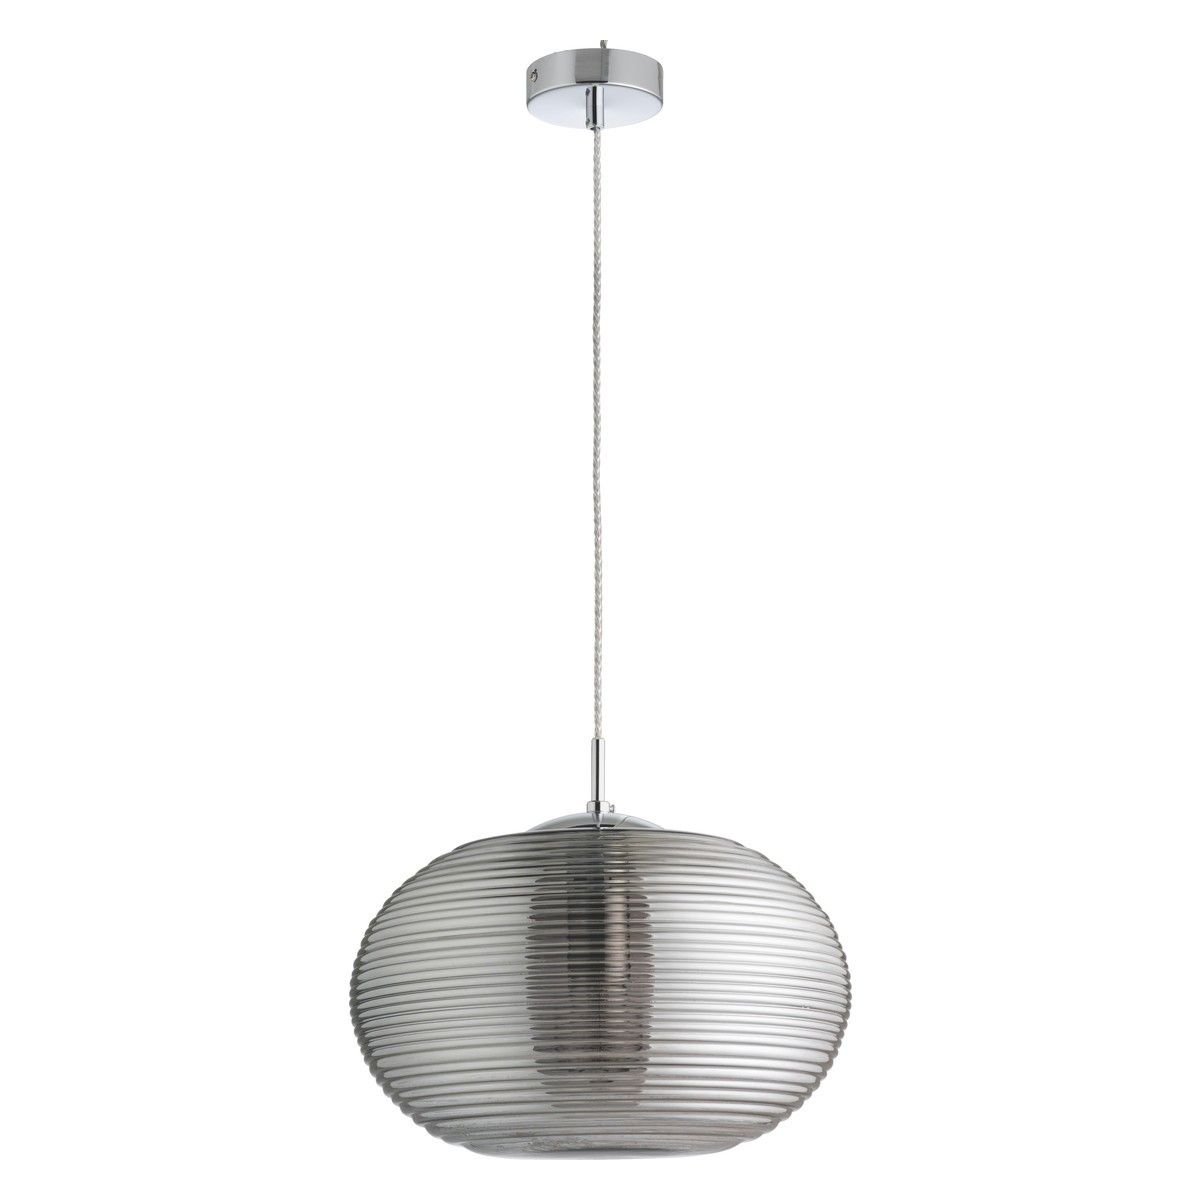 Isla smoked rippled glass and chrome ceiling light pendant buy isla smoked rippled glass and chrome ceiling light pendant buy now at habitat uk mozeypictures Image collections